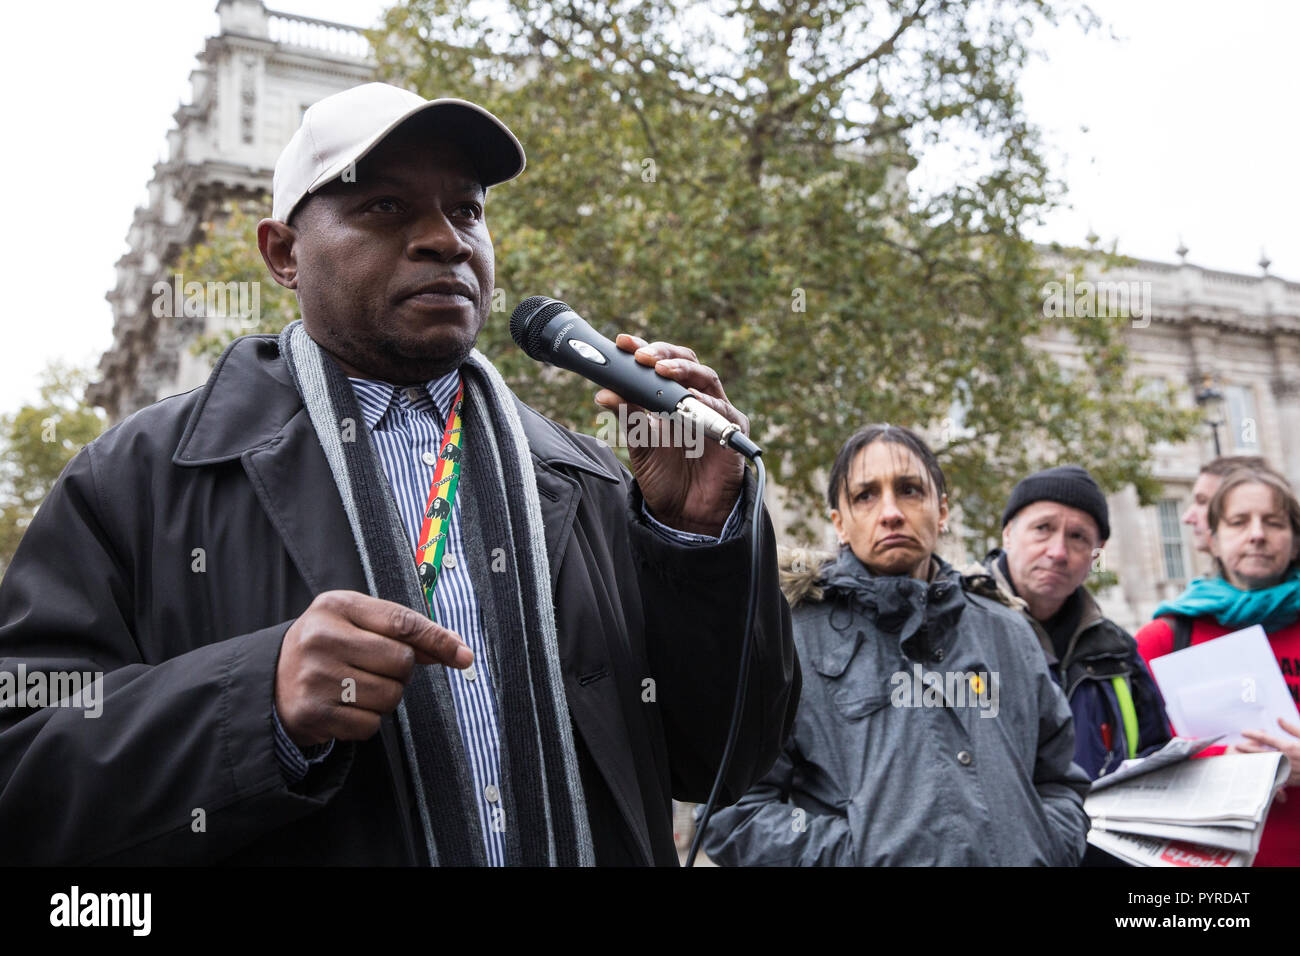 London, UK. 27th October, 2018. Tipper Naphtali, cousin of Mikey Powell, addresses campaigners from the United Families and Friends Campaign. - Stock Image